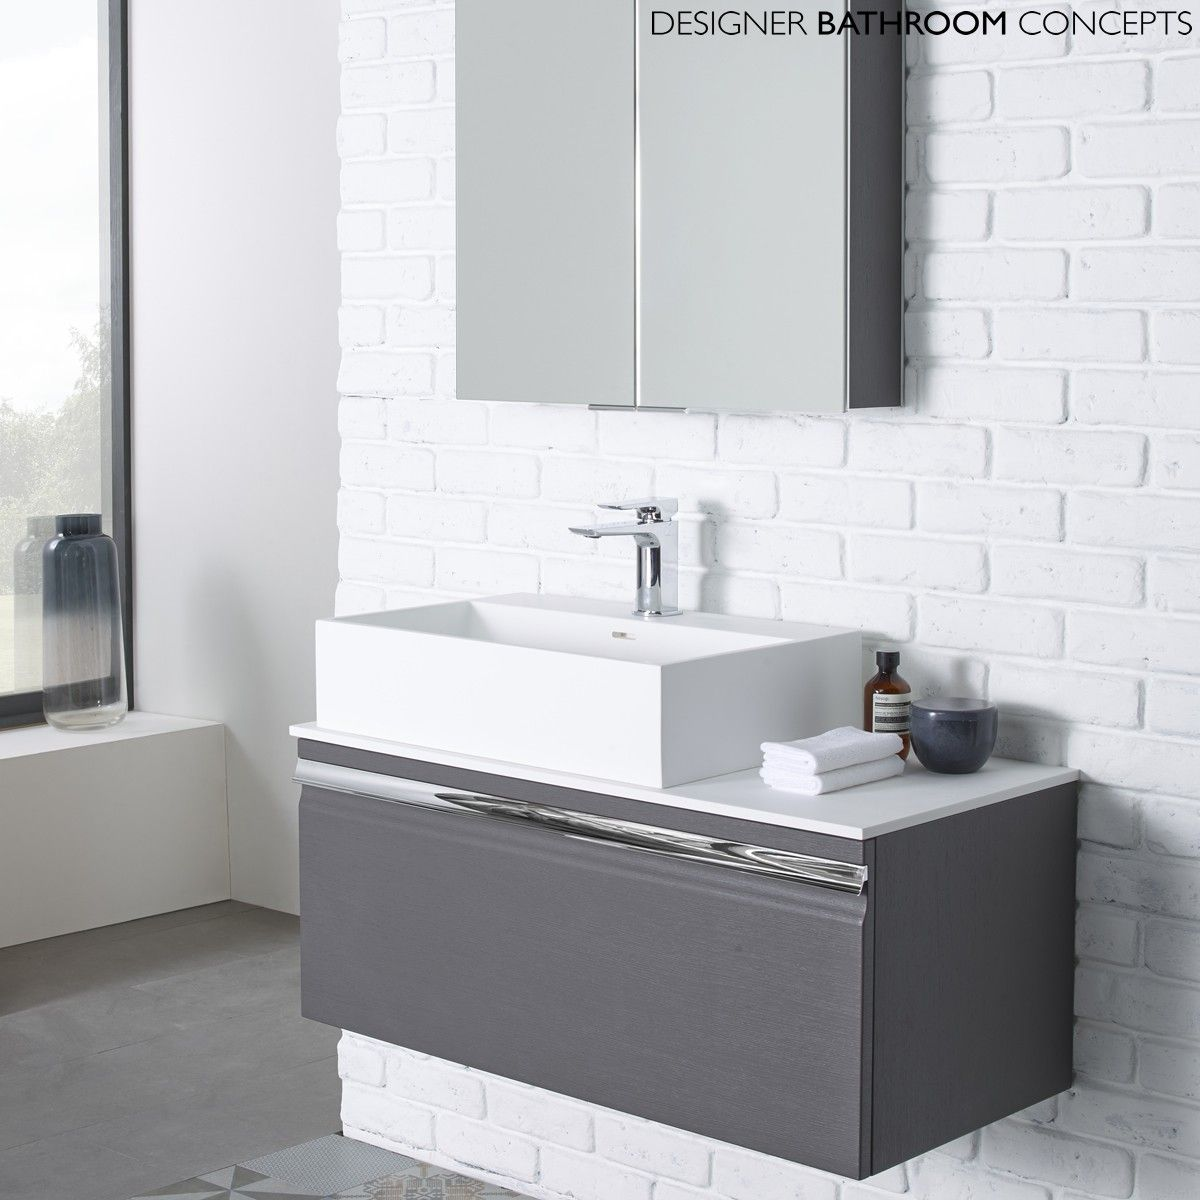 Bathroom vanity unit 900mm - The Pursuit Designer Charcoal Elm 900mm Bathroom Vanity Unit From Roper Rhodes Is A High Quality